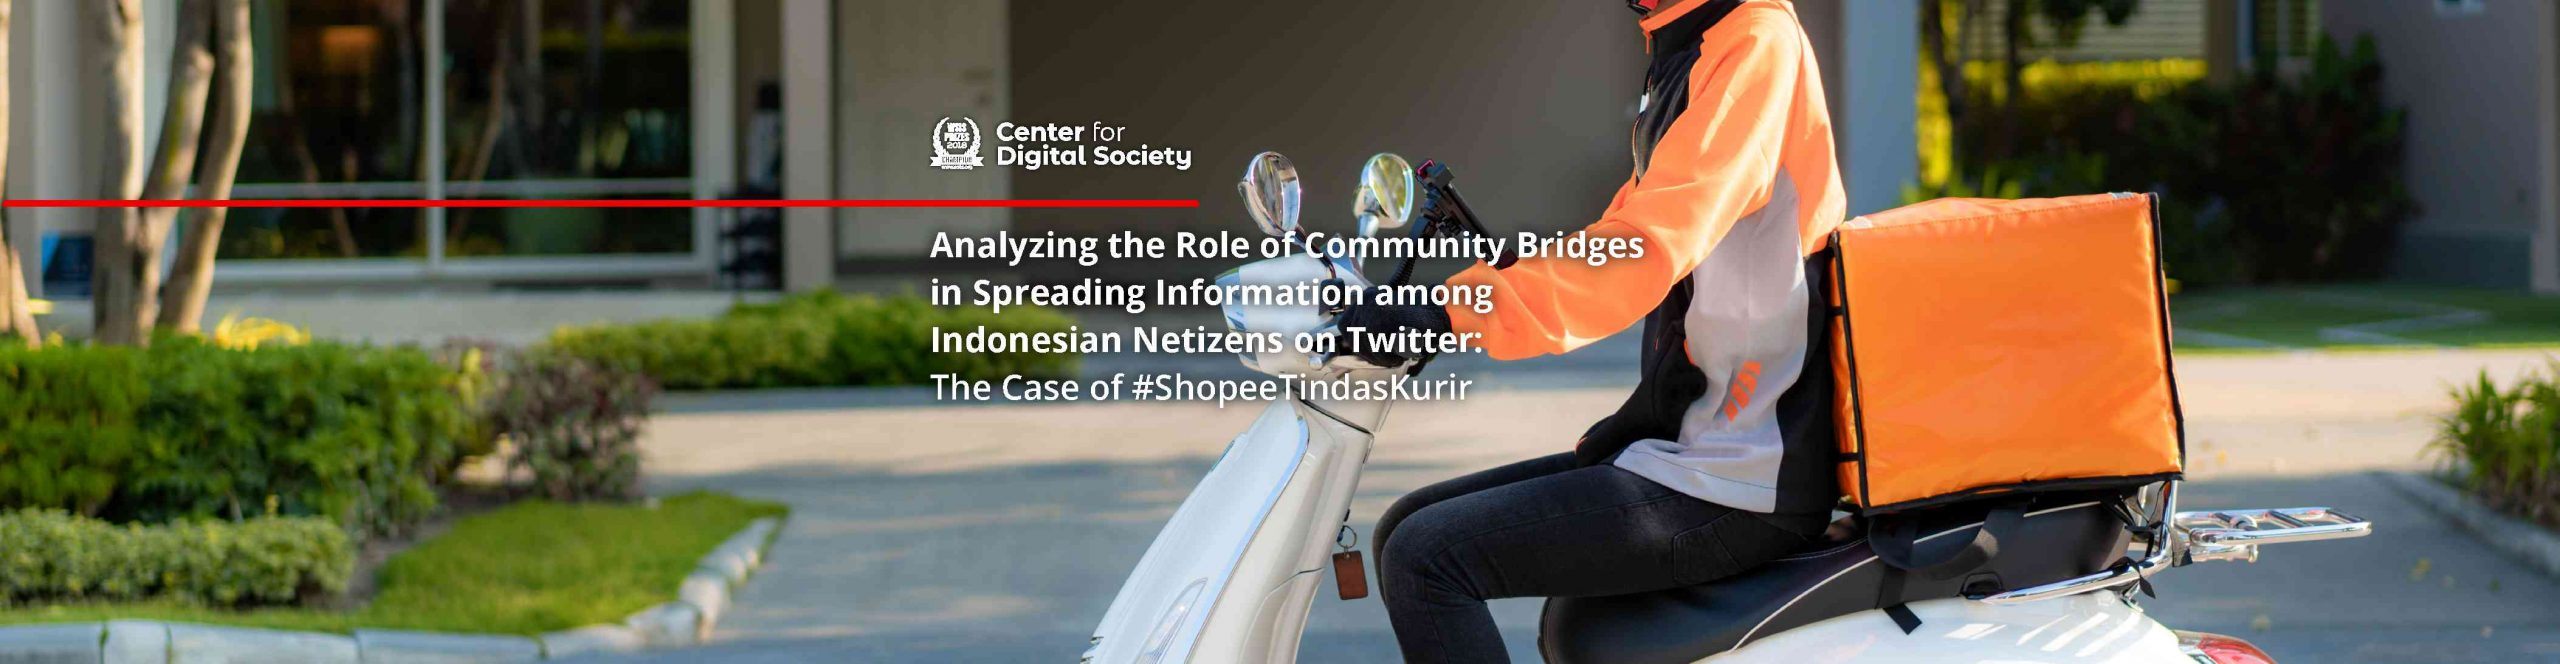 Analyzing the Role of Community Bridges in Spreading Information among Indonesian Netizens on Twitter: The Case of #ShopeeTindasKurir